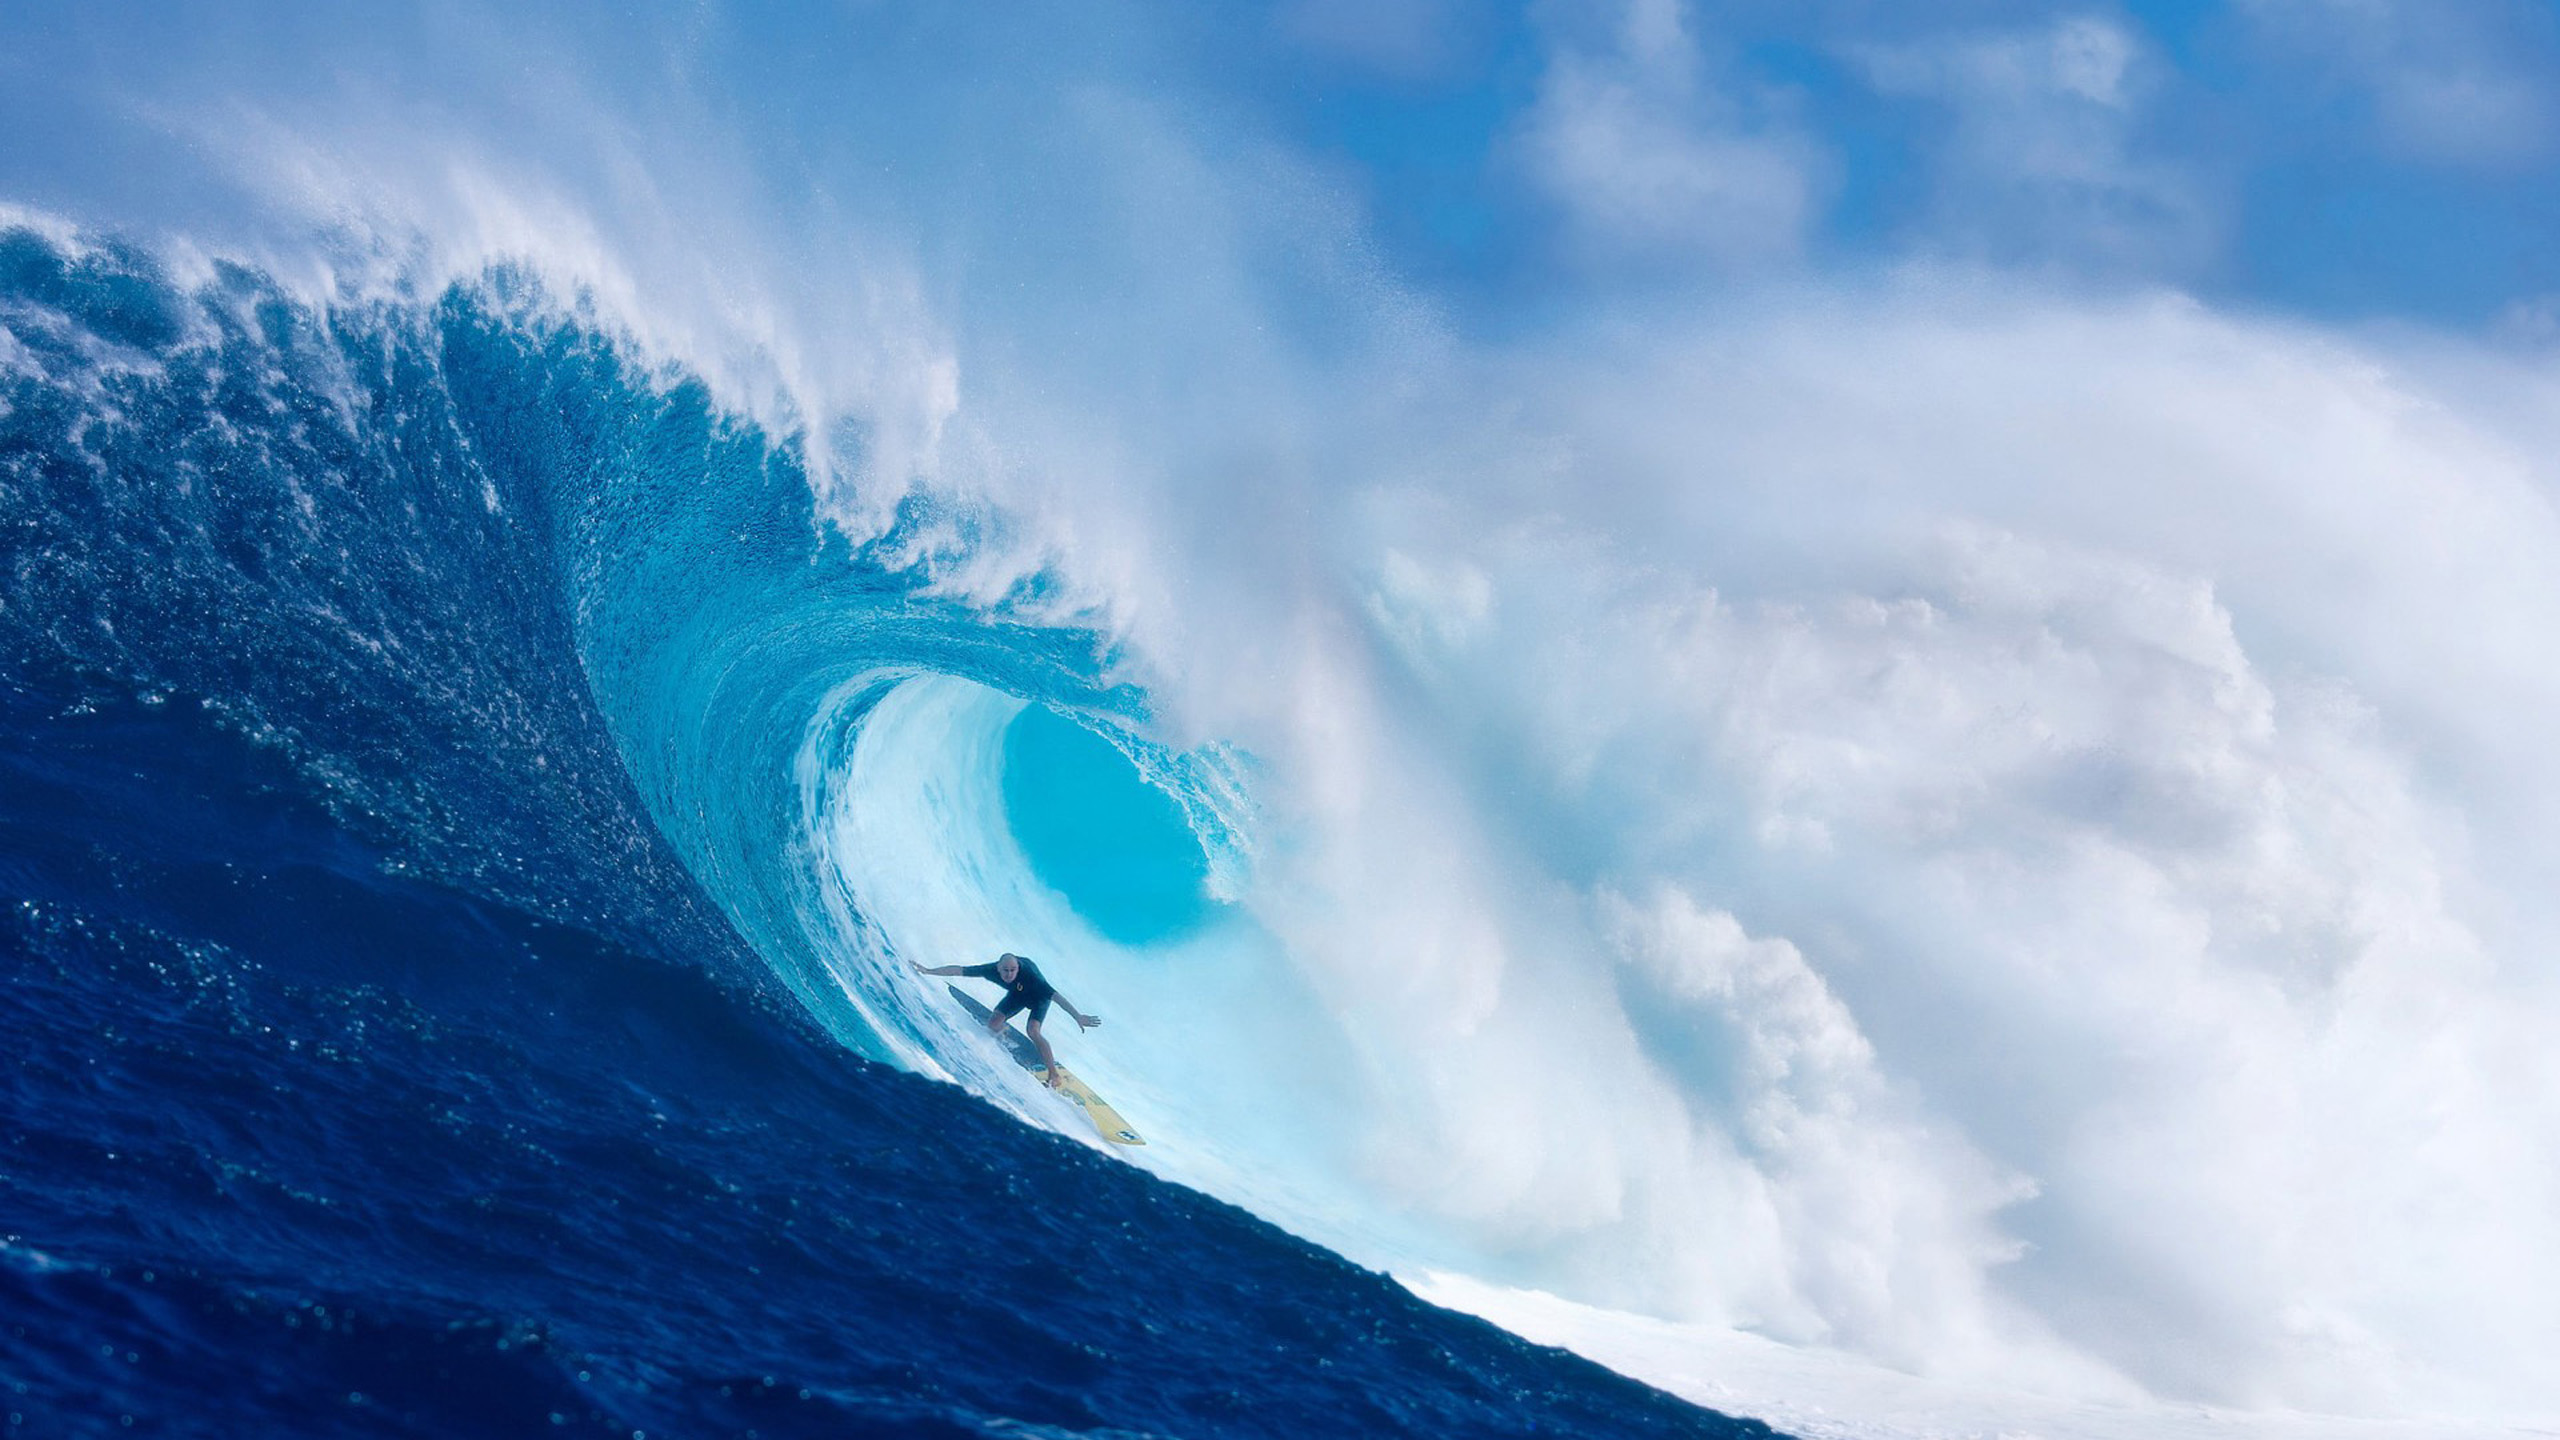 Ultimate Surfing cool wallpapers HD Wallpaper Downloads 2560x1440